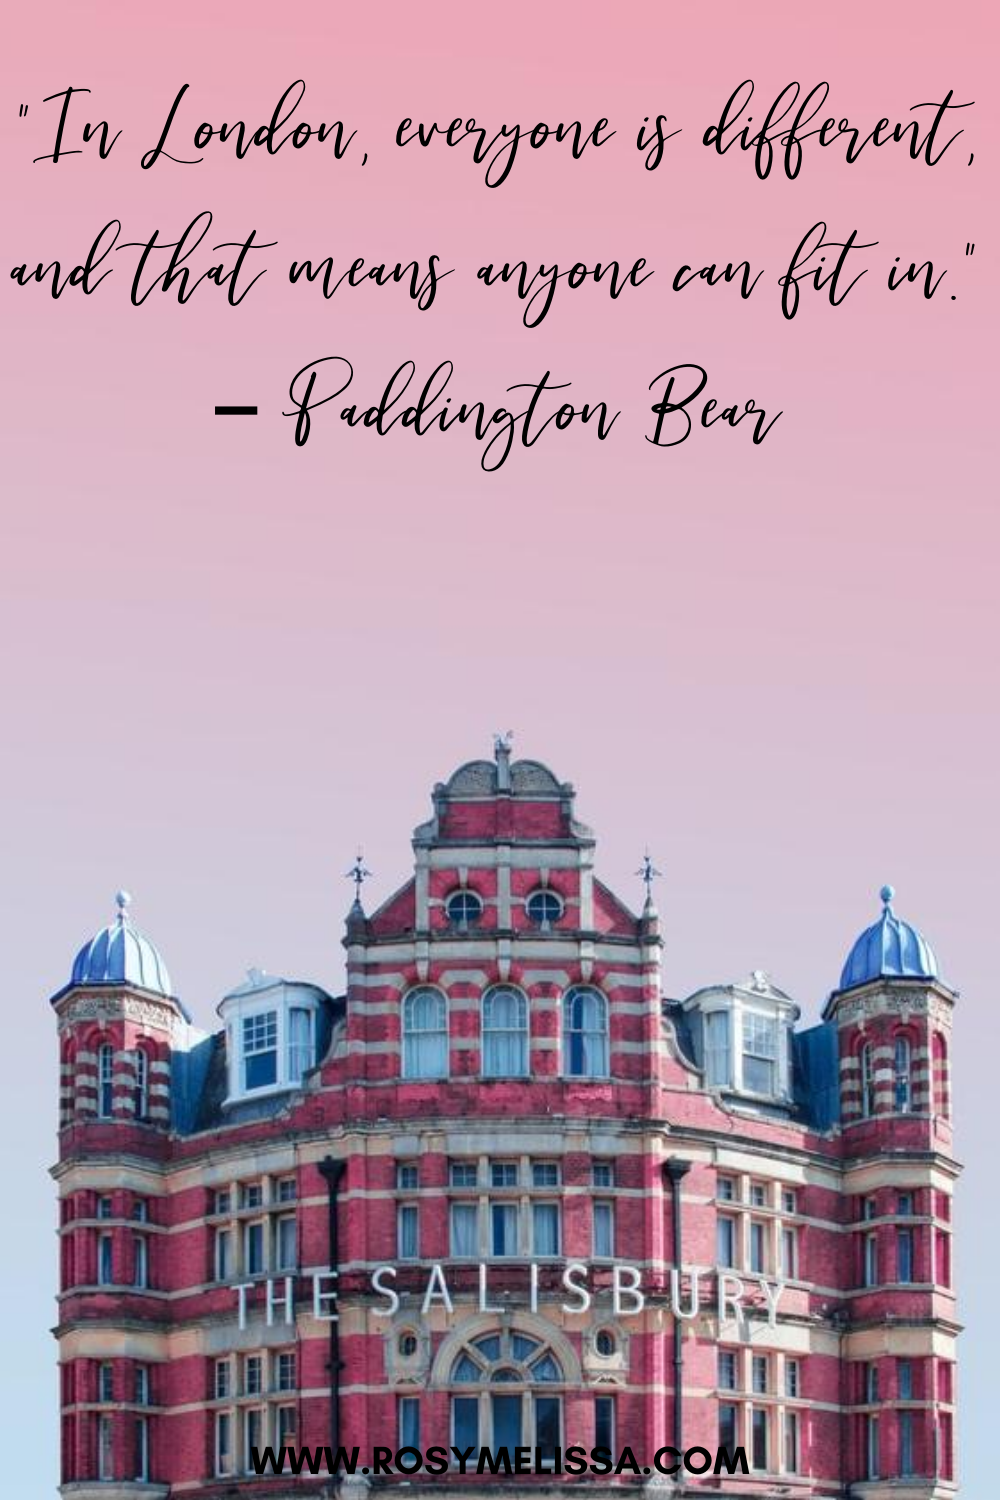 a red building during sunset with a pink sky, london quote from paddington bear